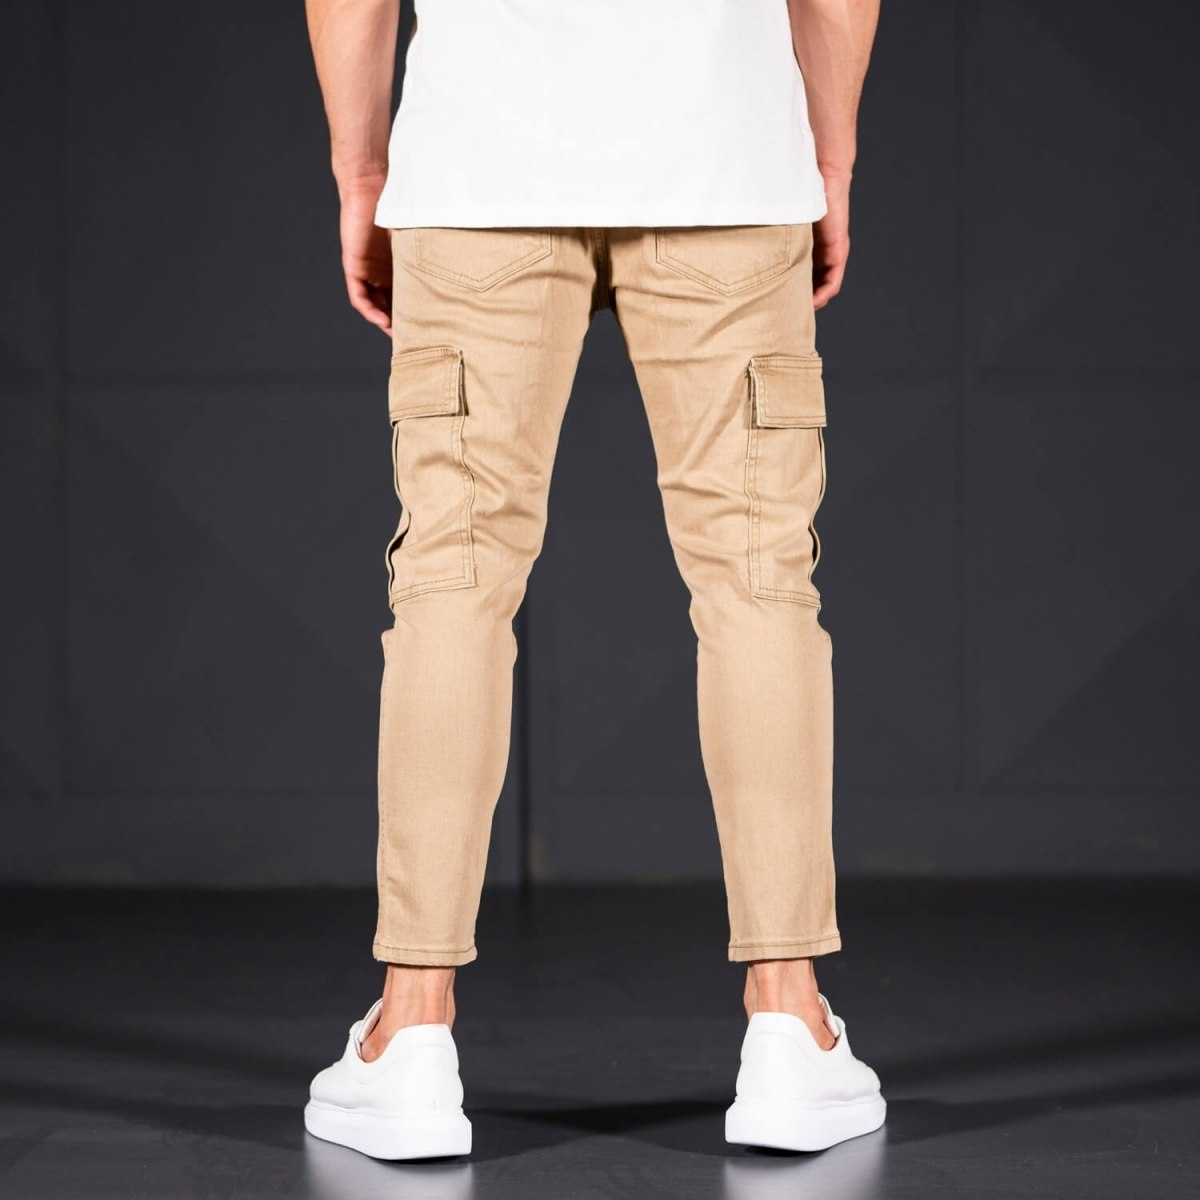 Men's Jeans with Pockets Style in Camel Mv Premium Brand - 4